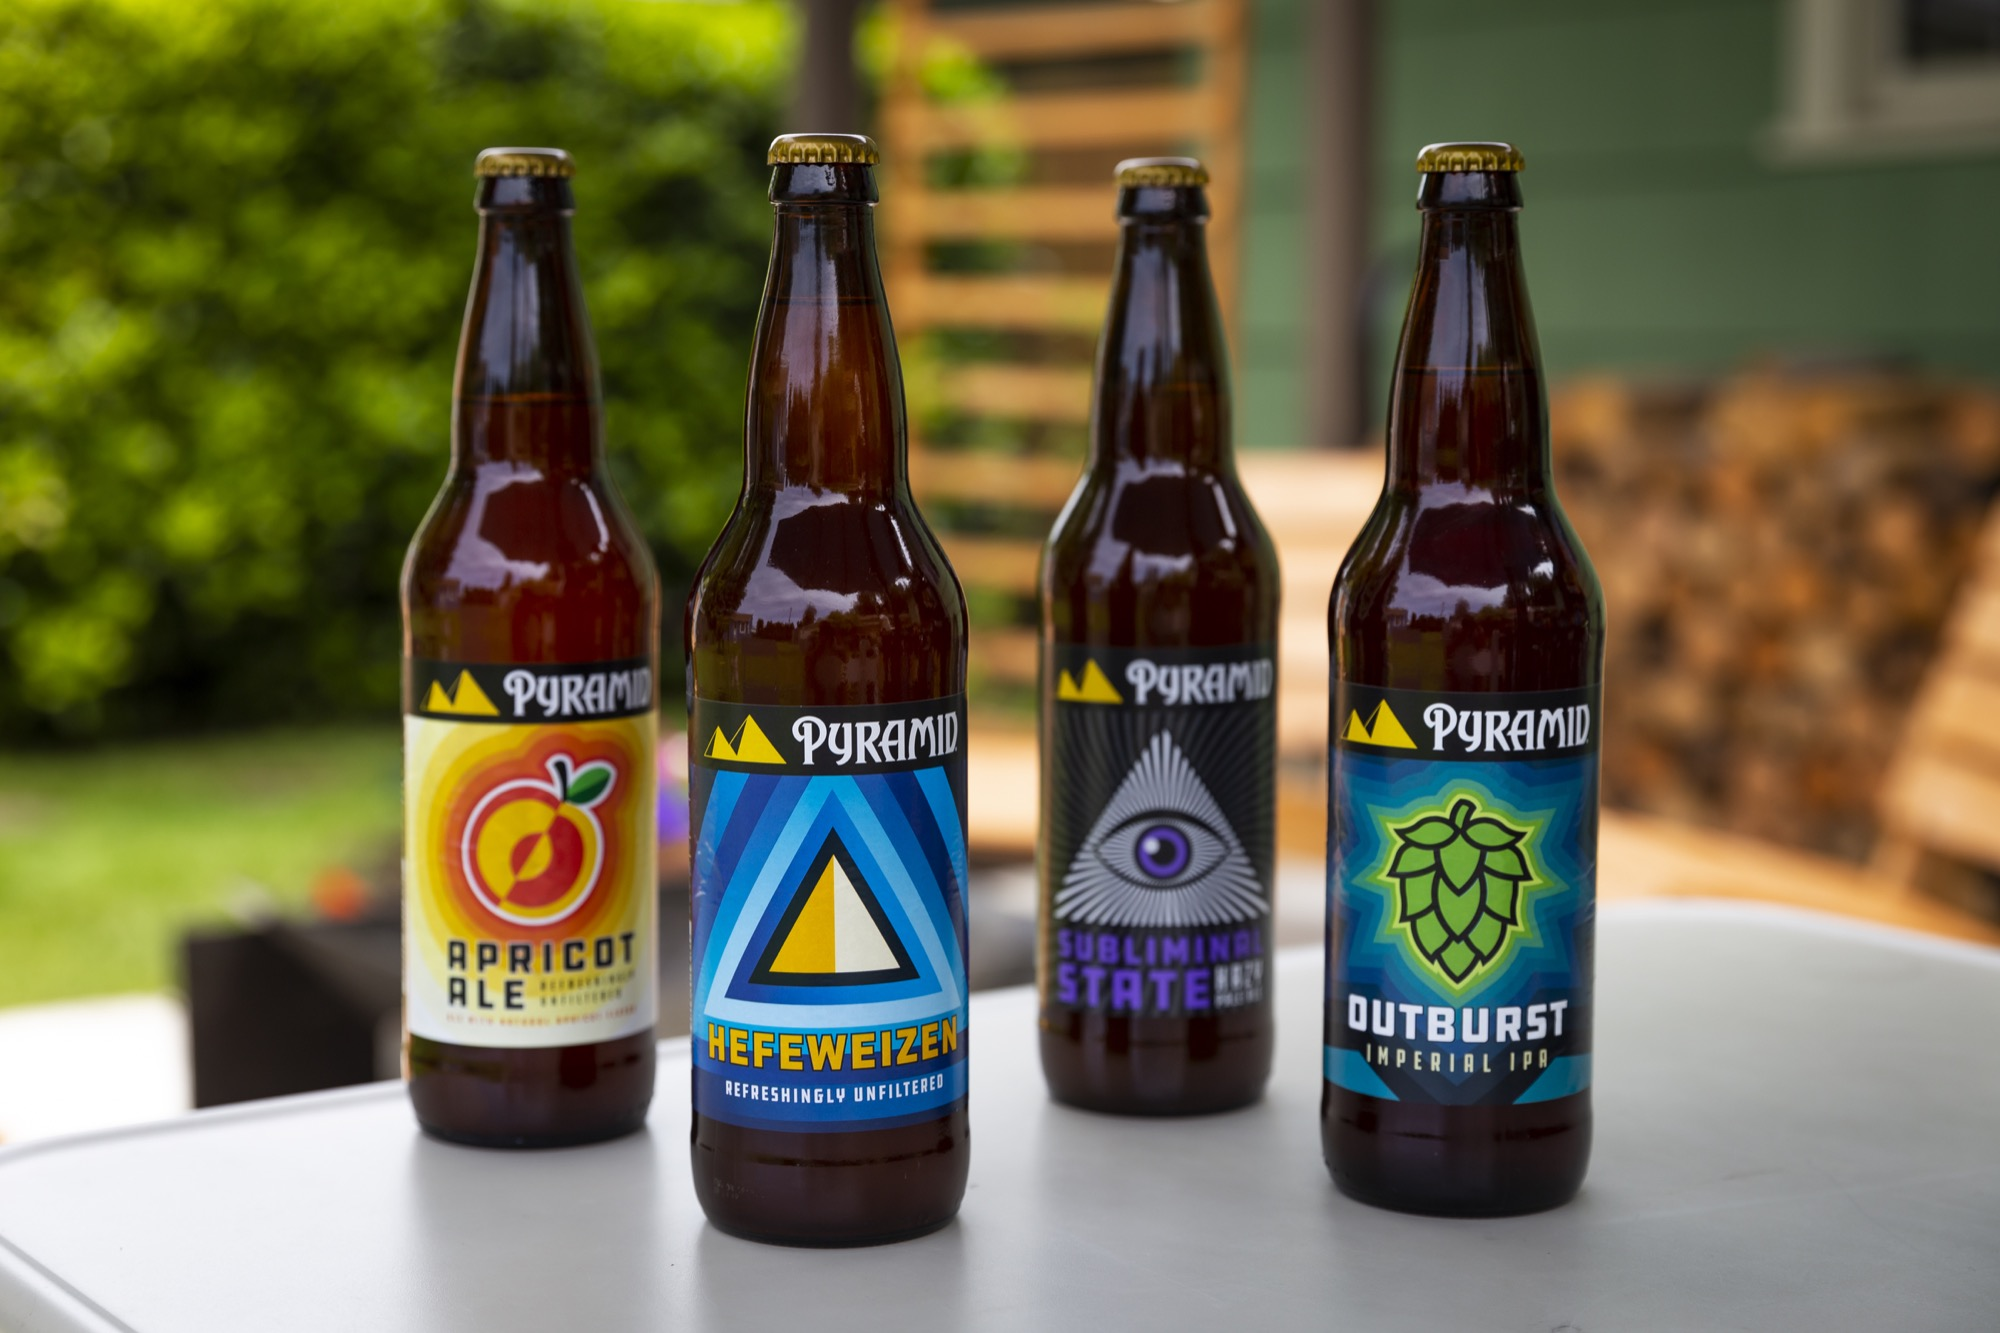 Pyramid Brewing will continue with 22oz bottles of its core offerings of Hefeweizen, Outburst Imperial IPA and Apricot Ale along with its seasonal offering. (image courtesy of Pyramid Brewing)